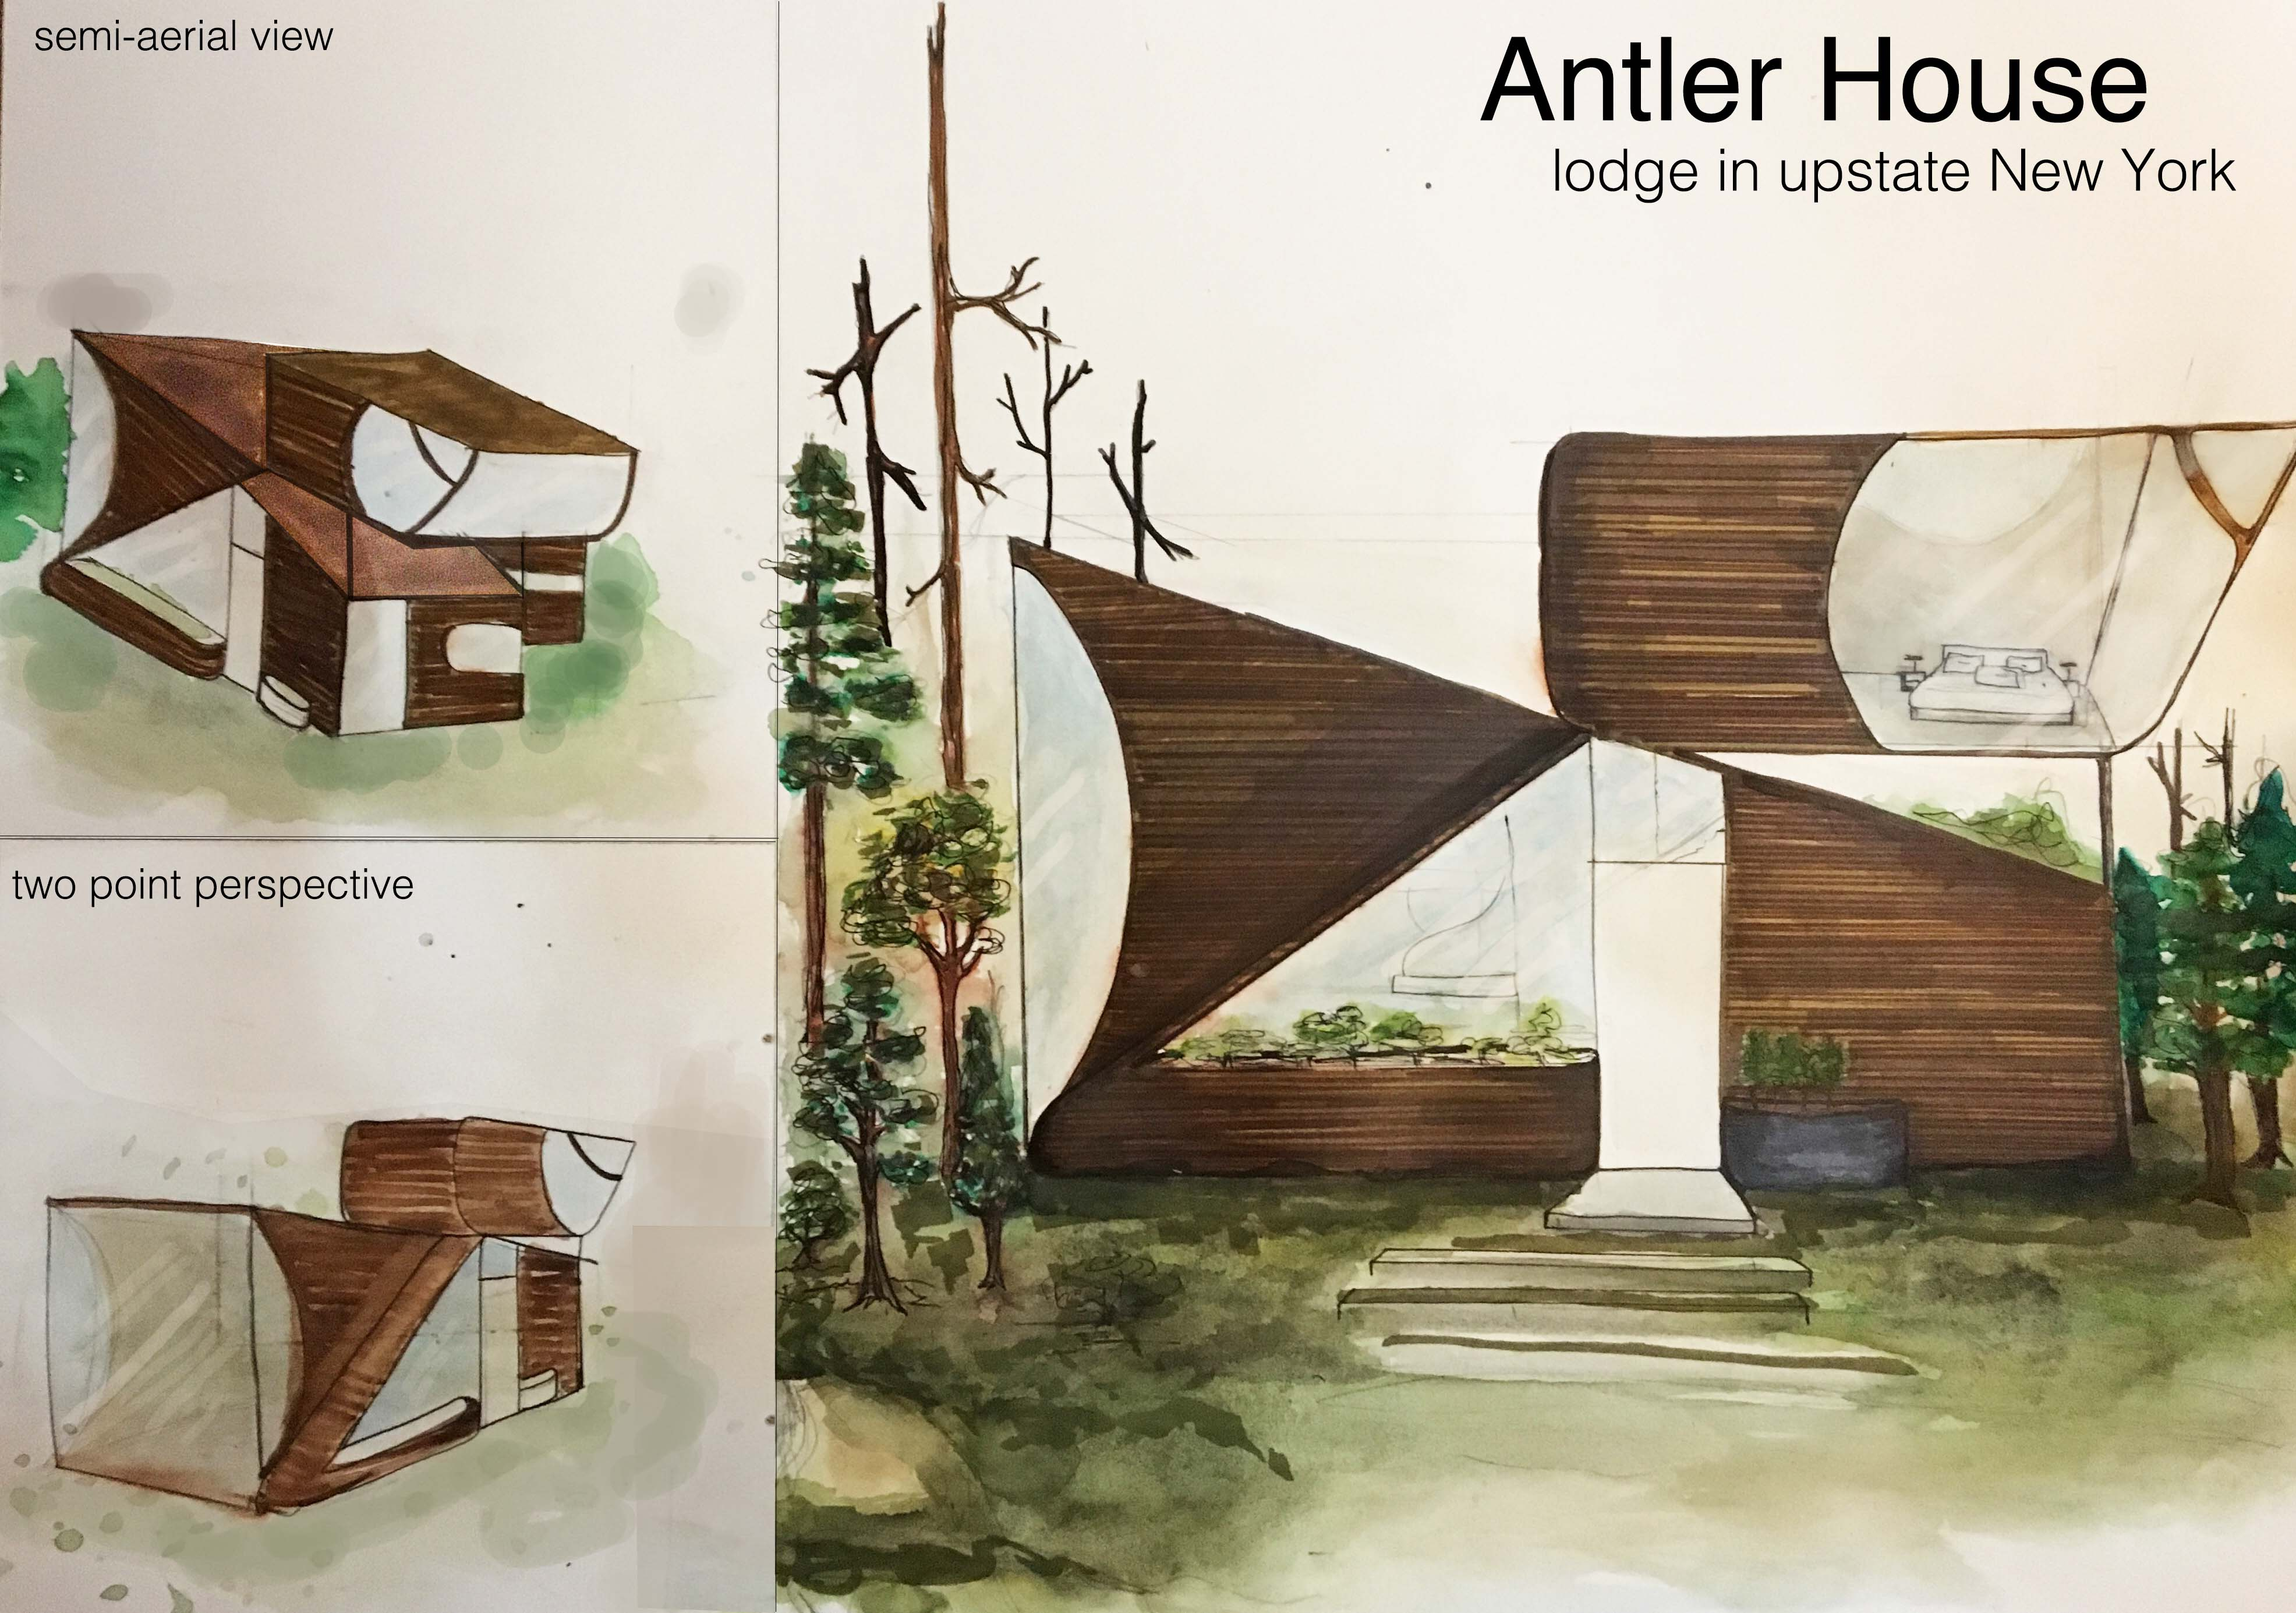 Antler house architectural rendering